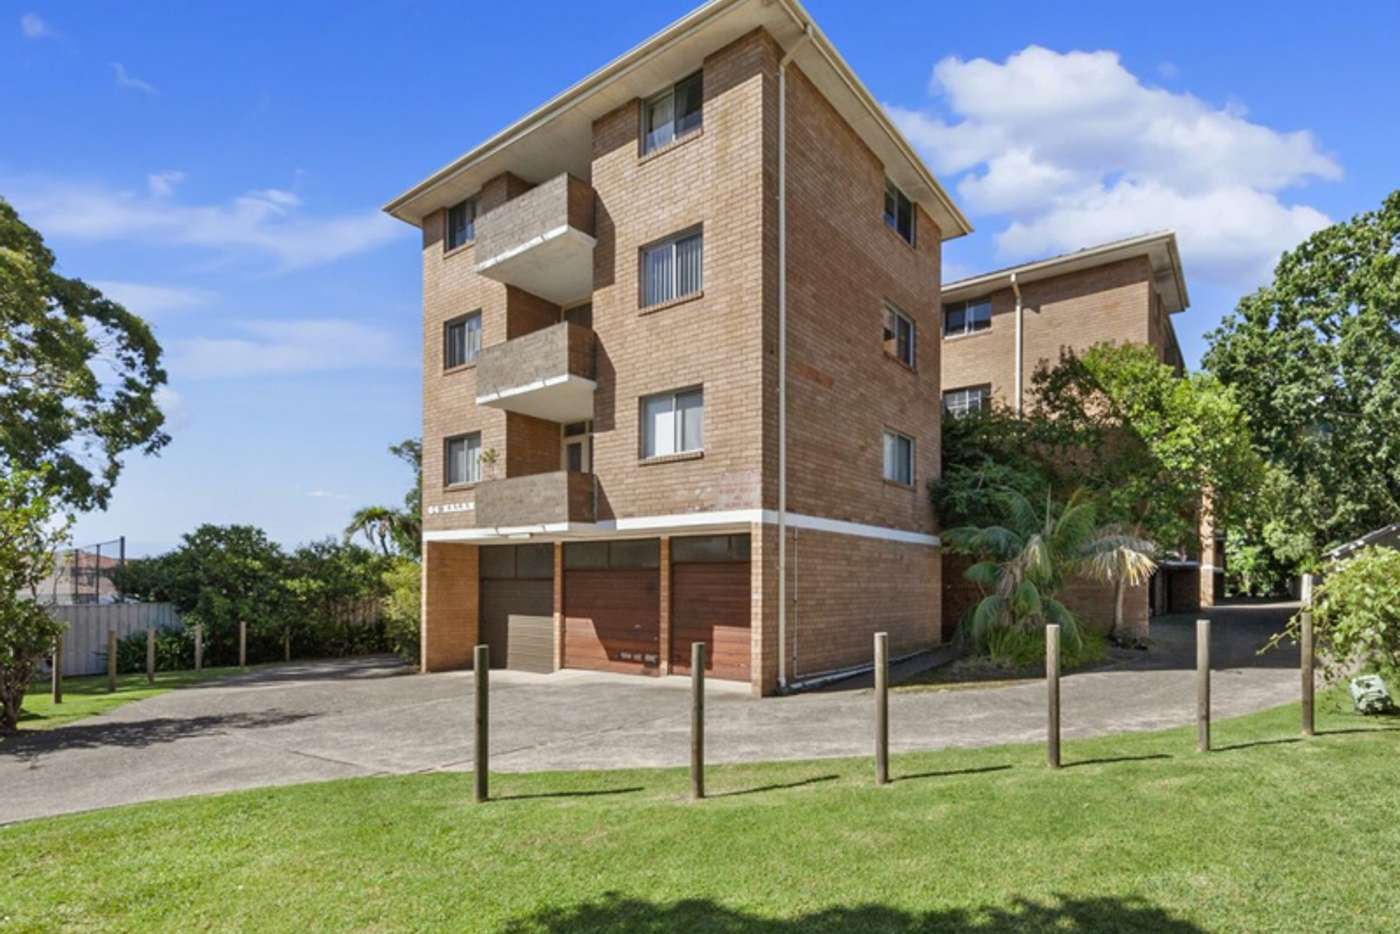 Main view of Homely apartment listing, 64 Sproule Street, Lakemba NSW 2195